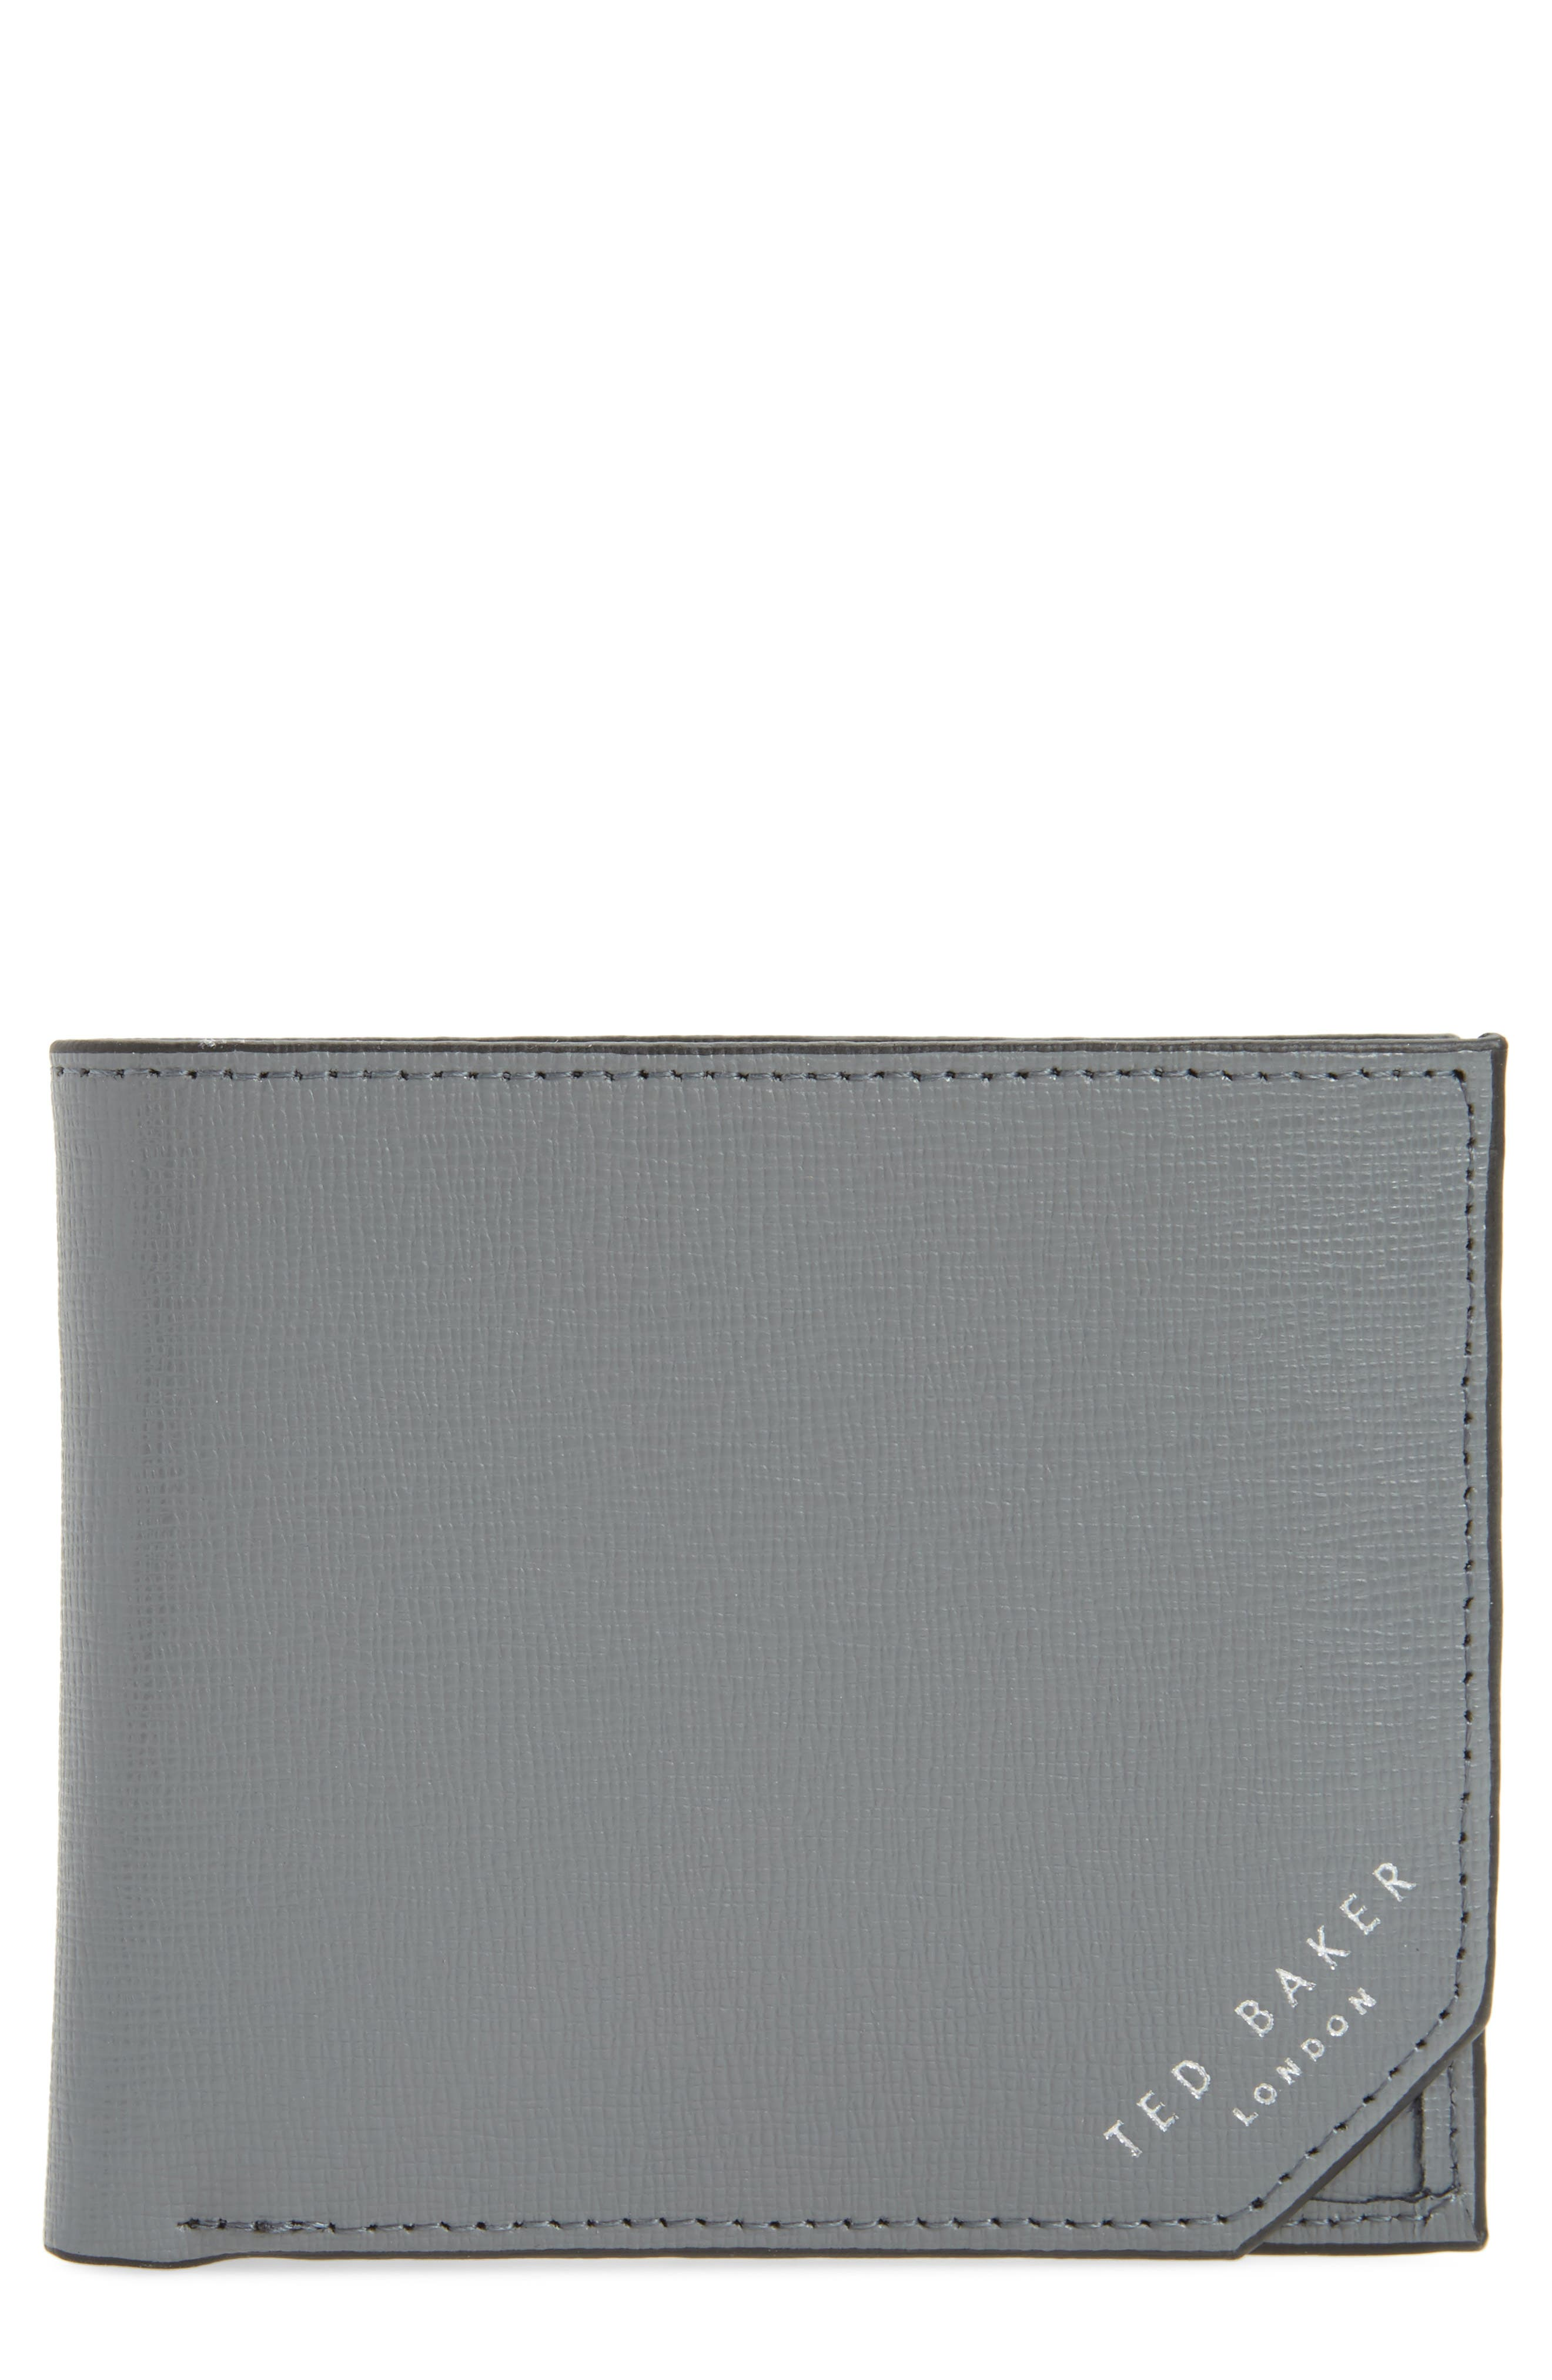 Stitchup Bifold Wallet,                         Main,                         color, Charcoal